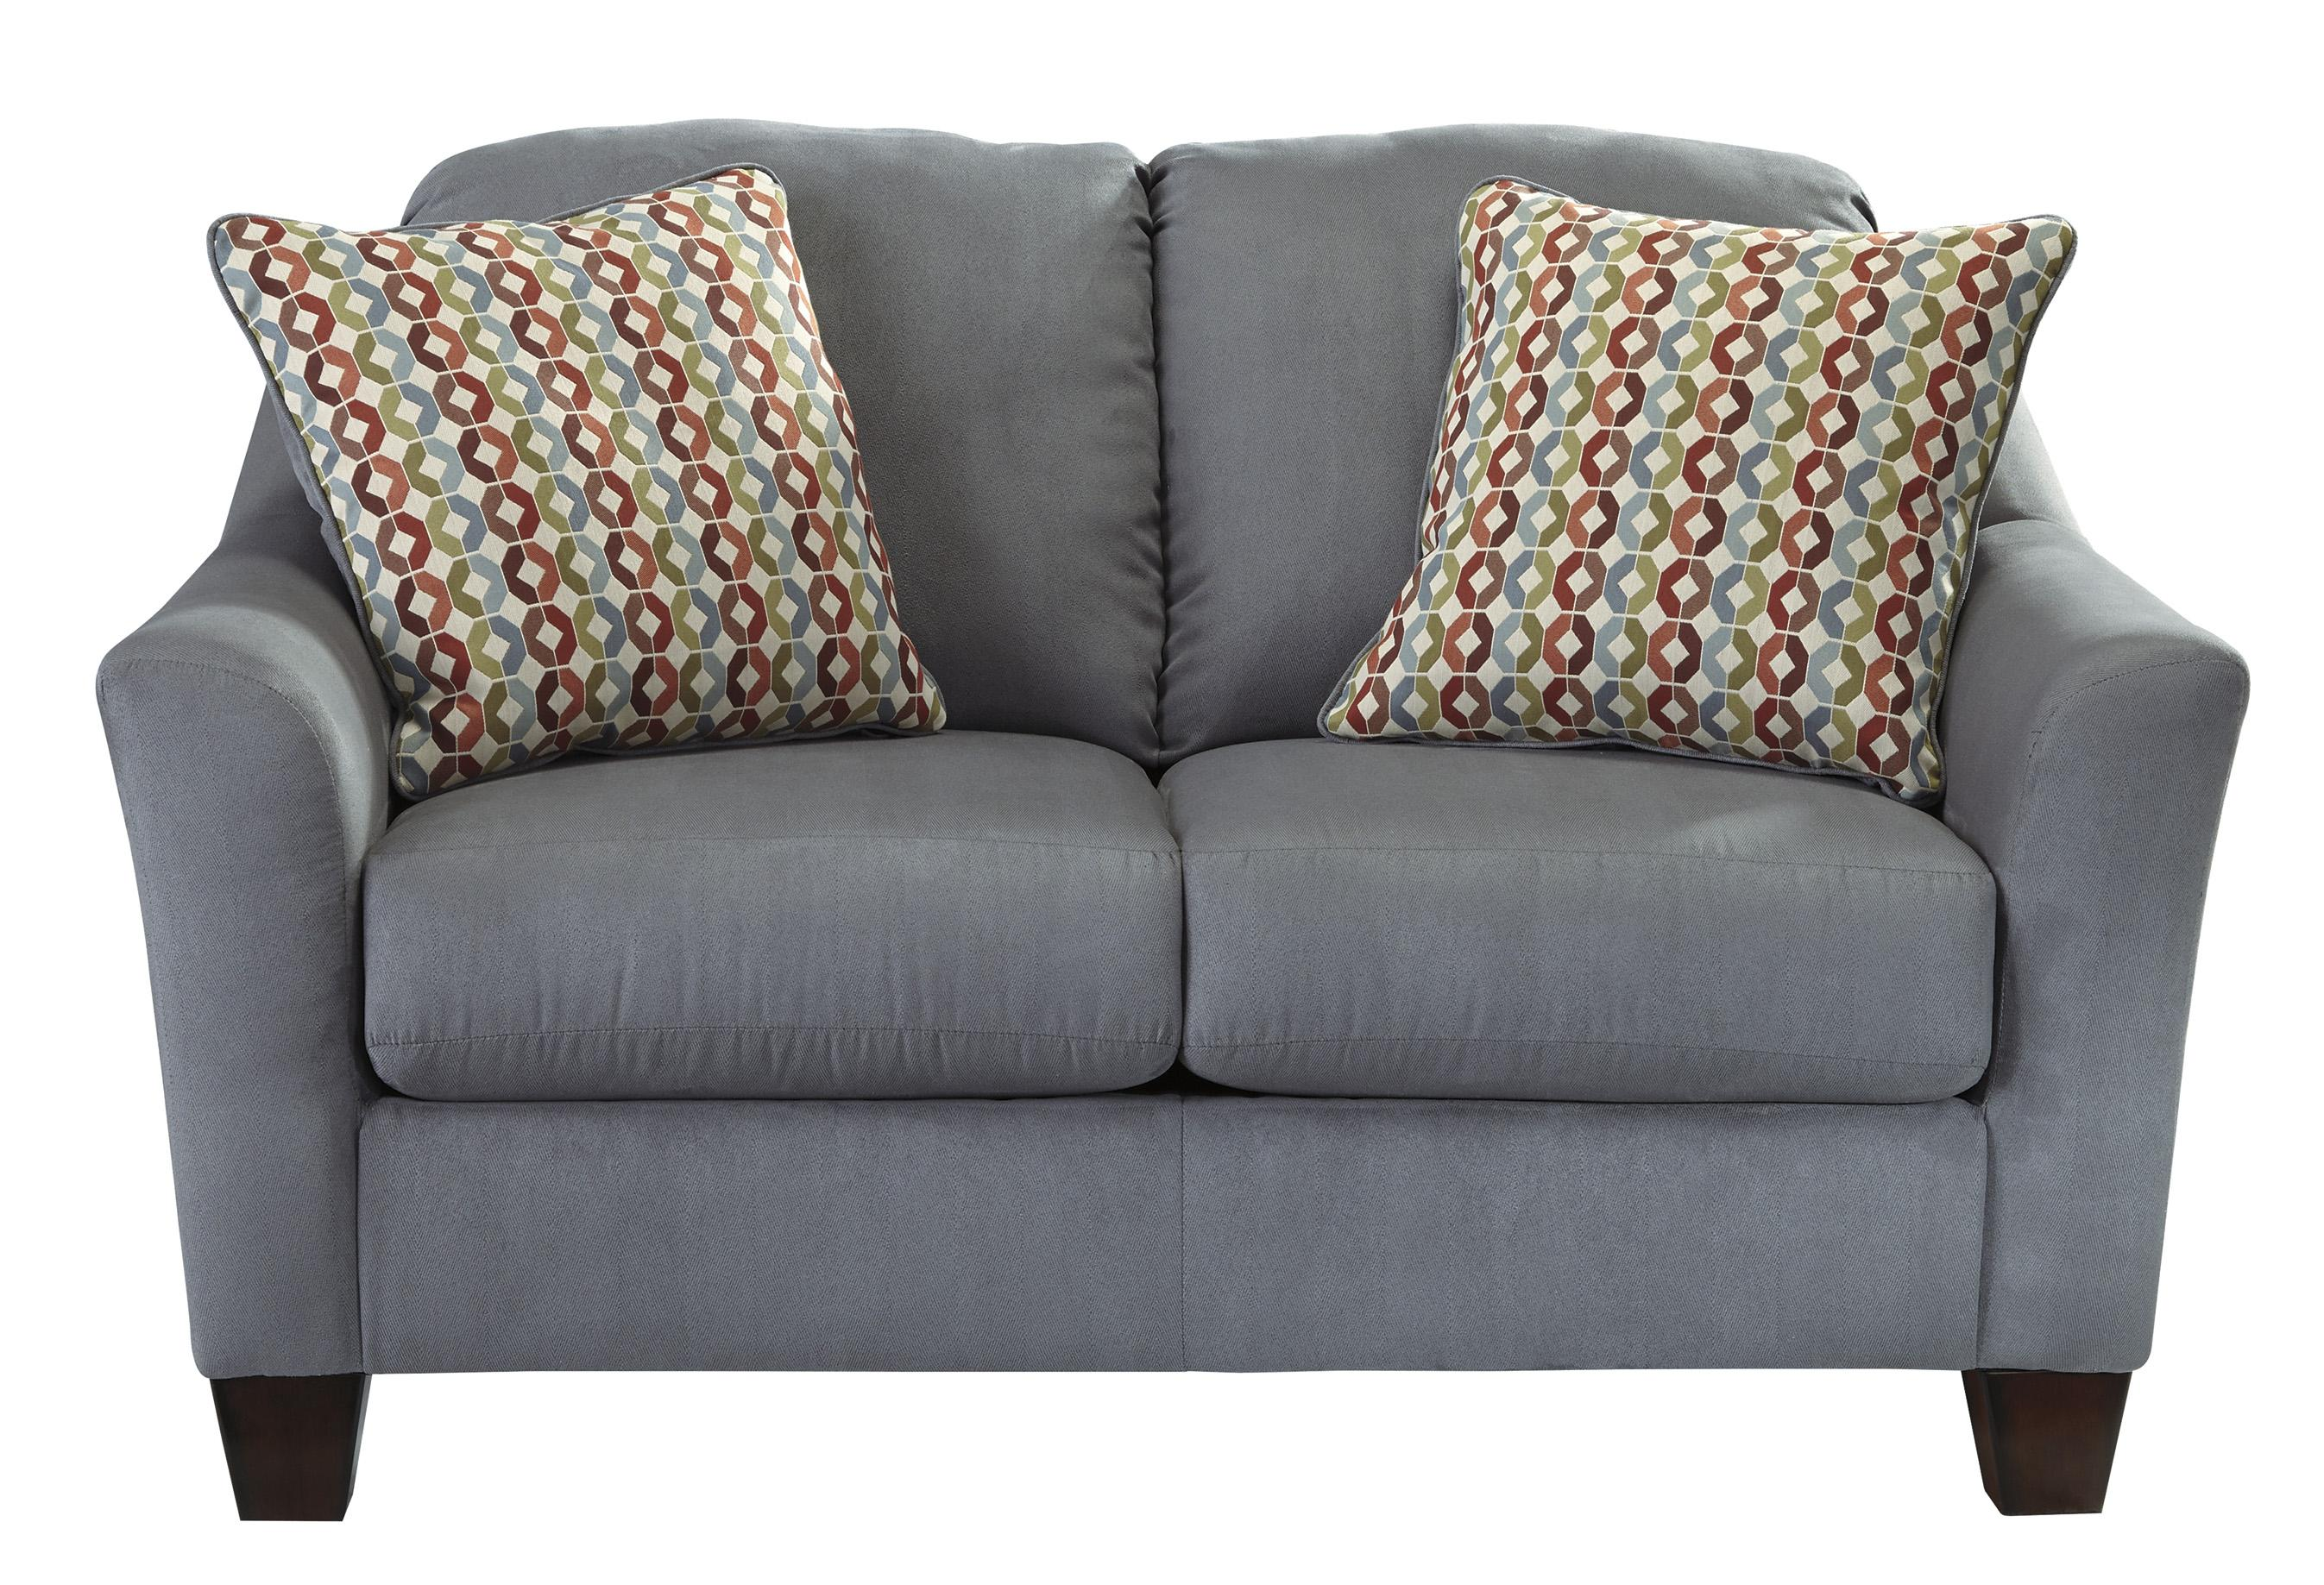 Signature Design by Ashley Hannin - Lagoon Loveseat - Item Number: 9580235